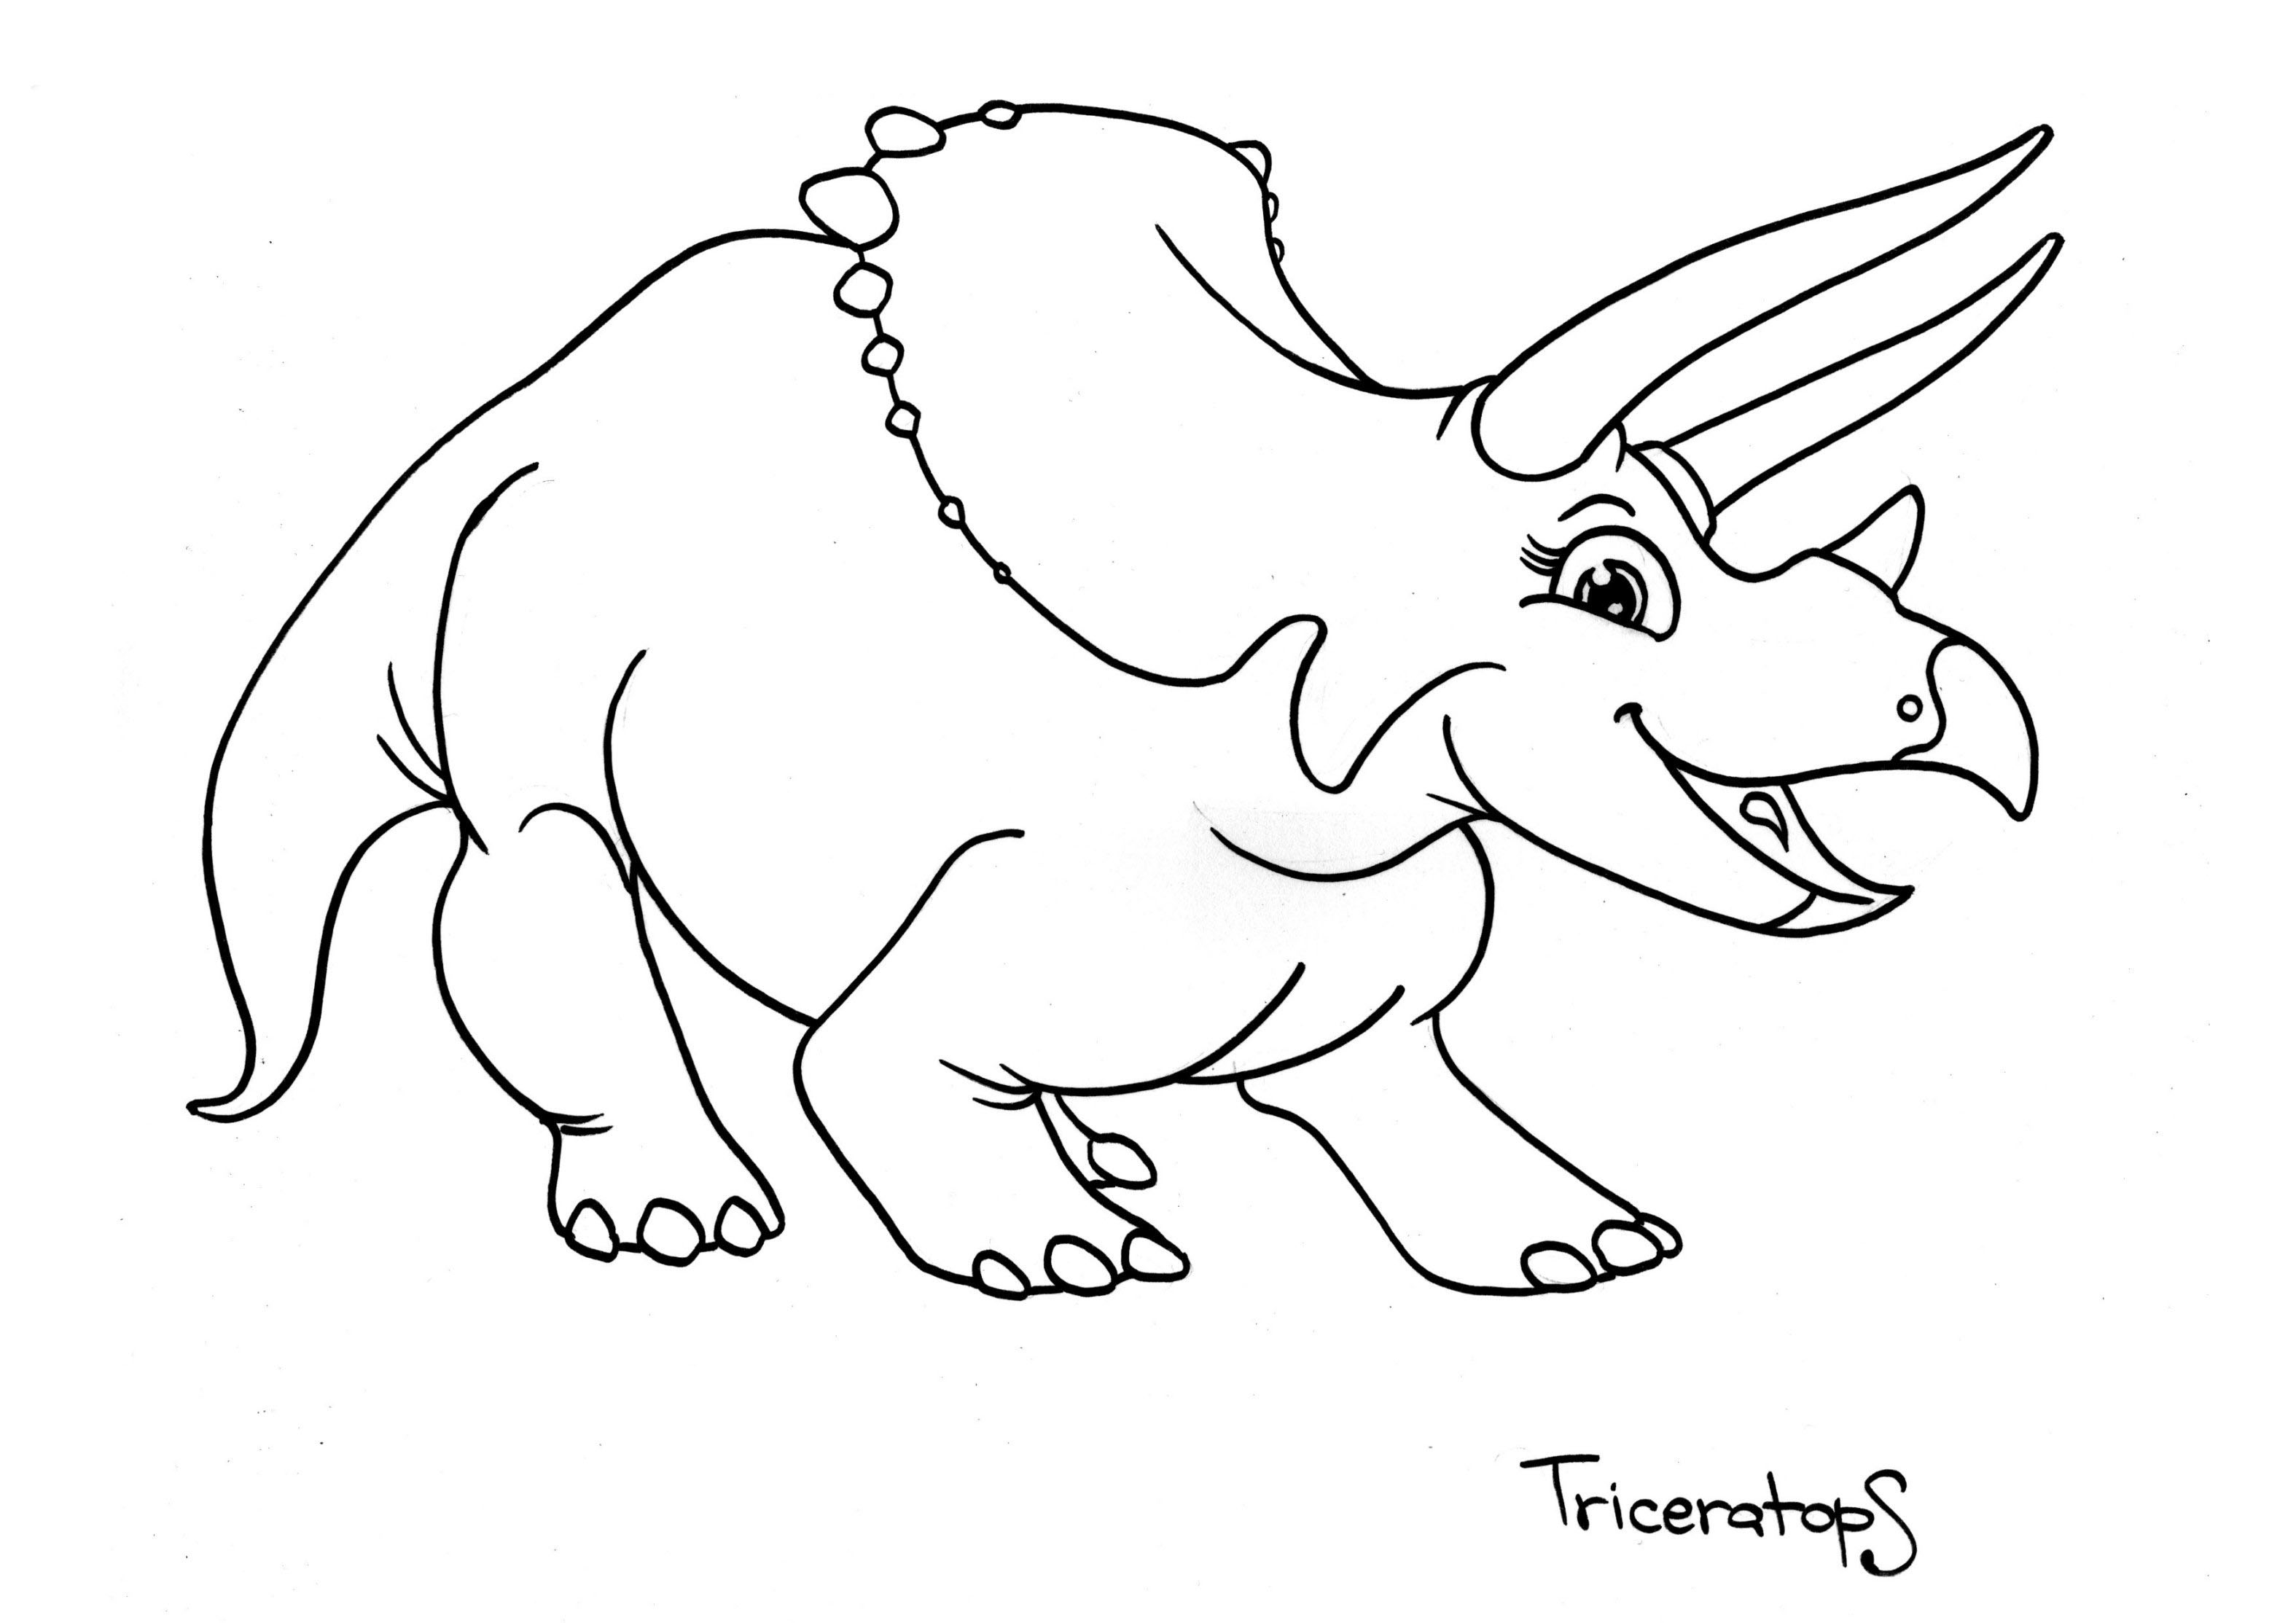 free printable dinosaur coloring pages coloring pages dinosaur free printable coloring pages coloring dinosaur printable pages free